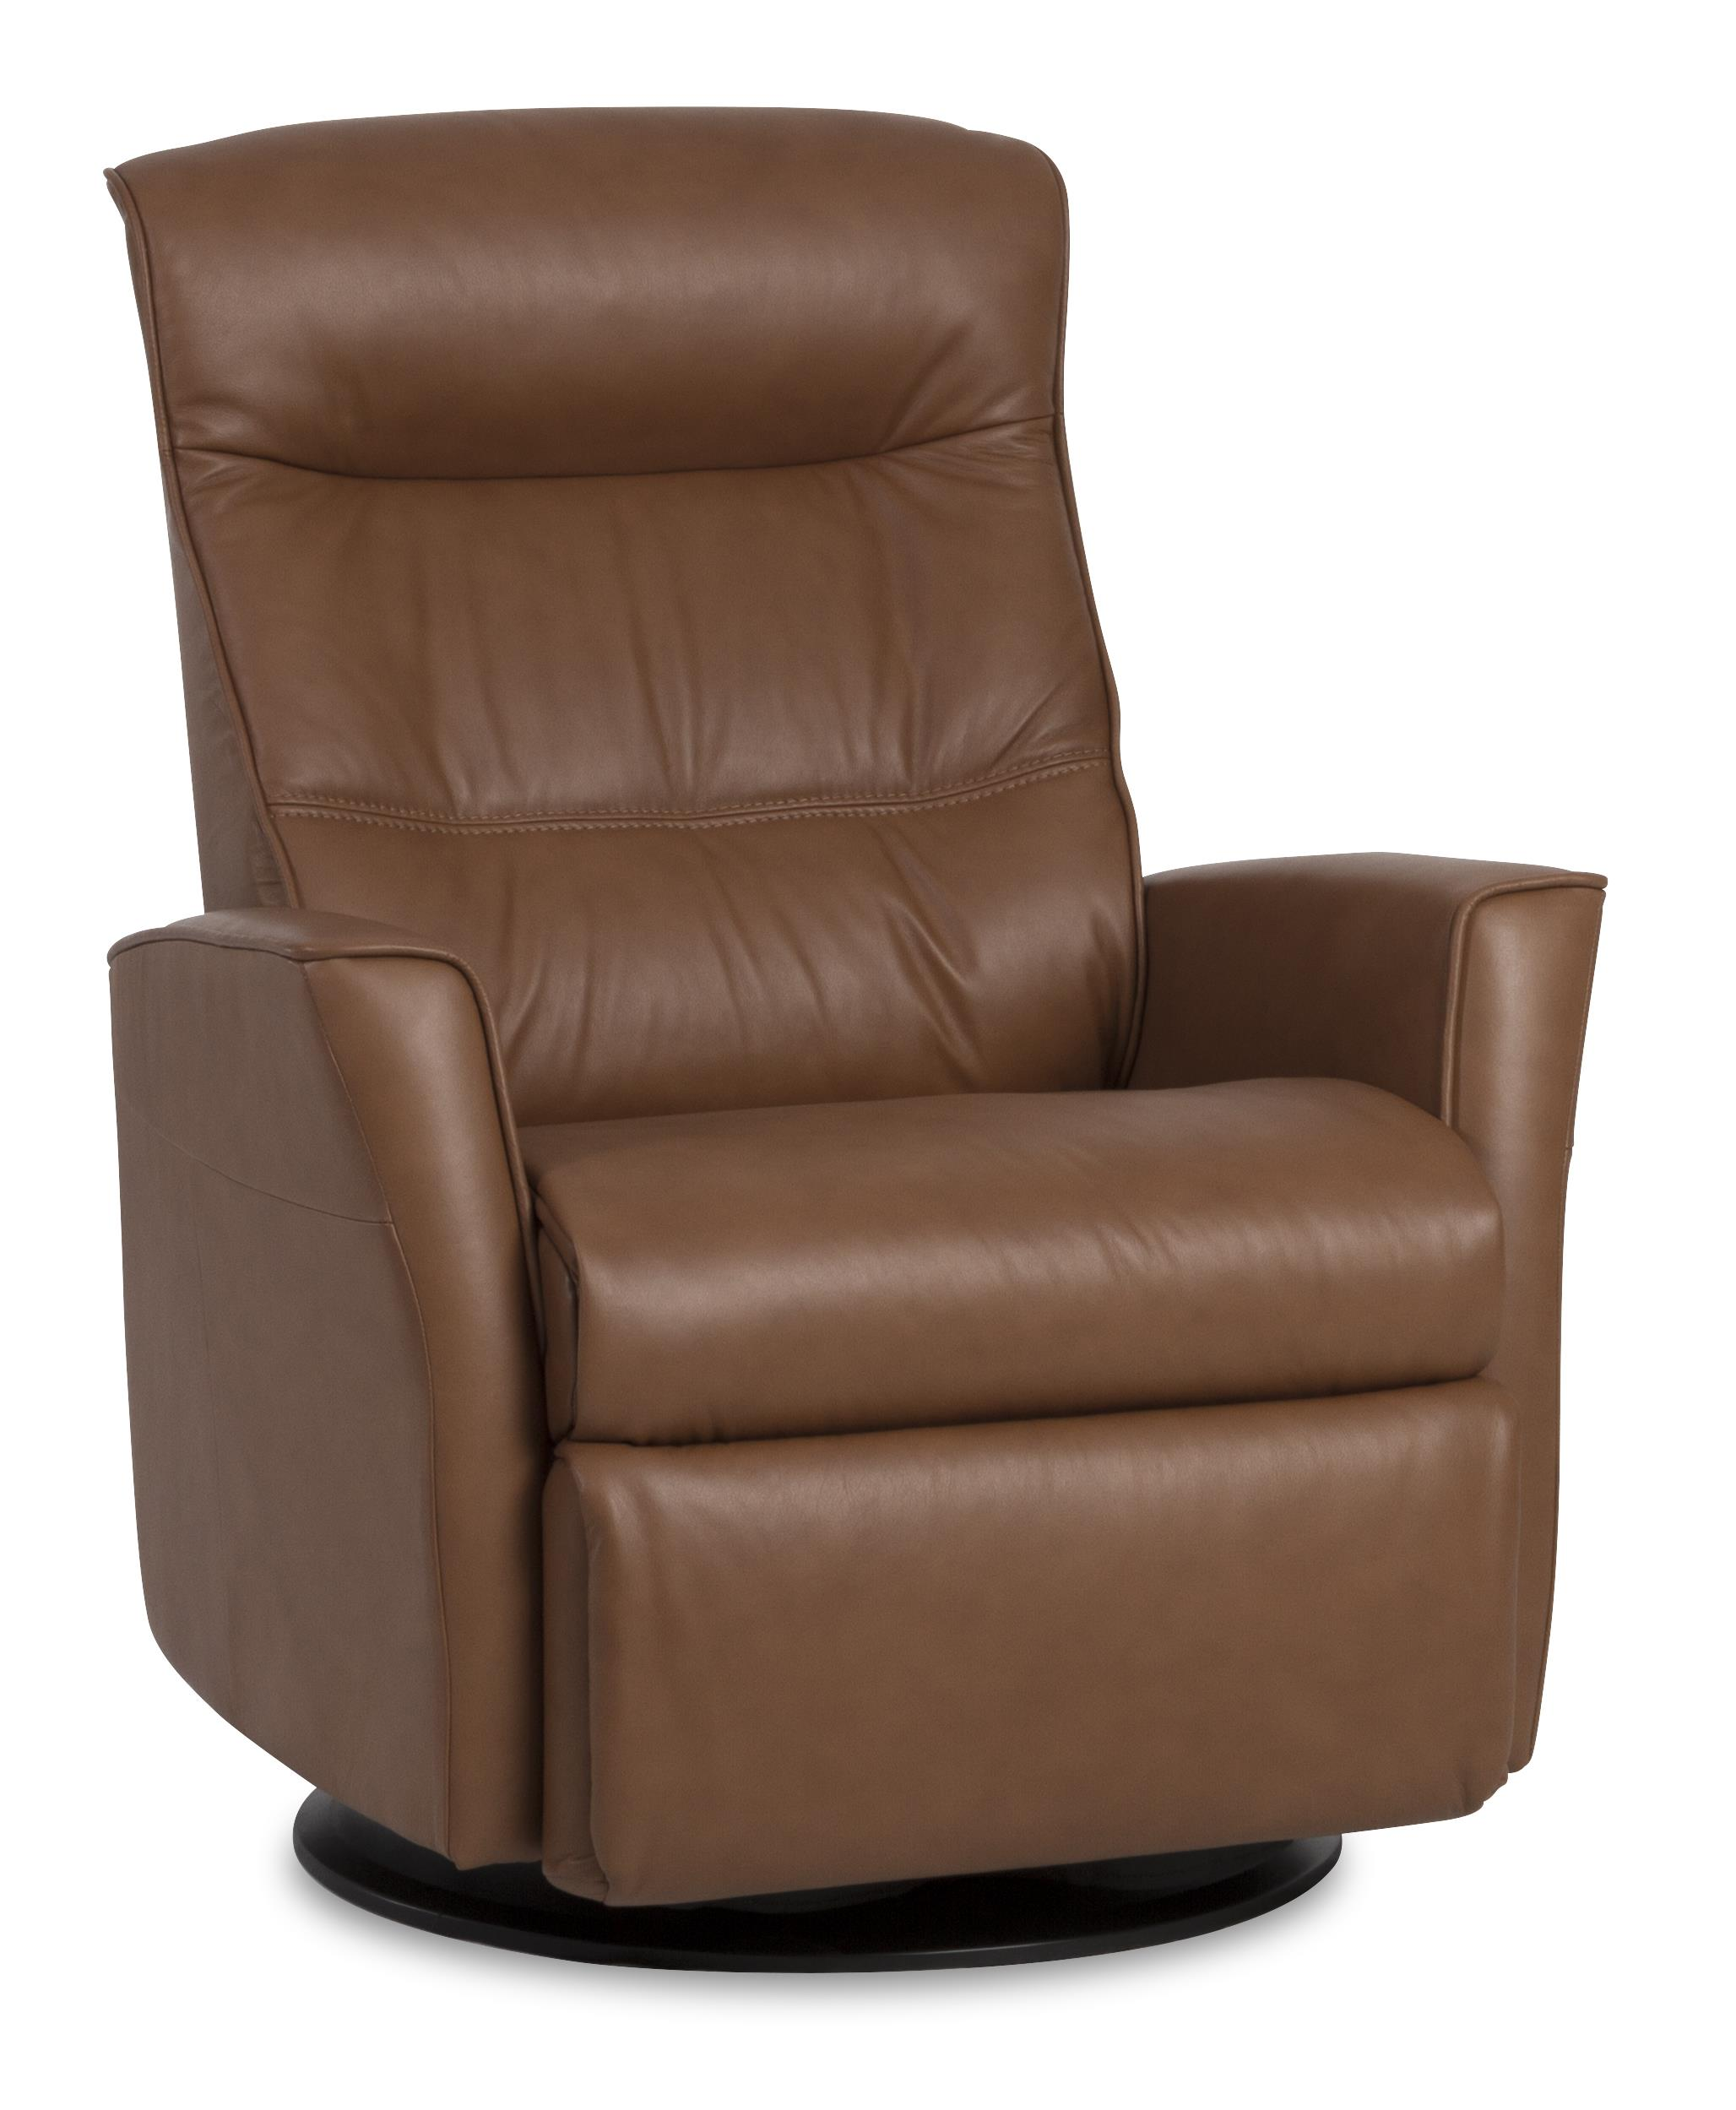 Crown Standard Power Relaxer Recliner by IMG Norway at Baer's Furniture